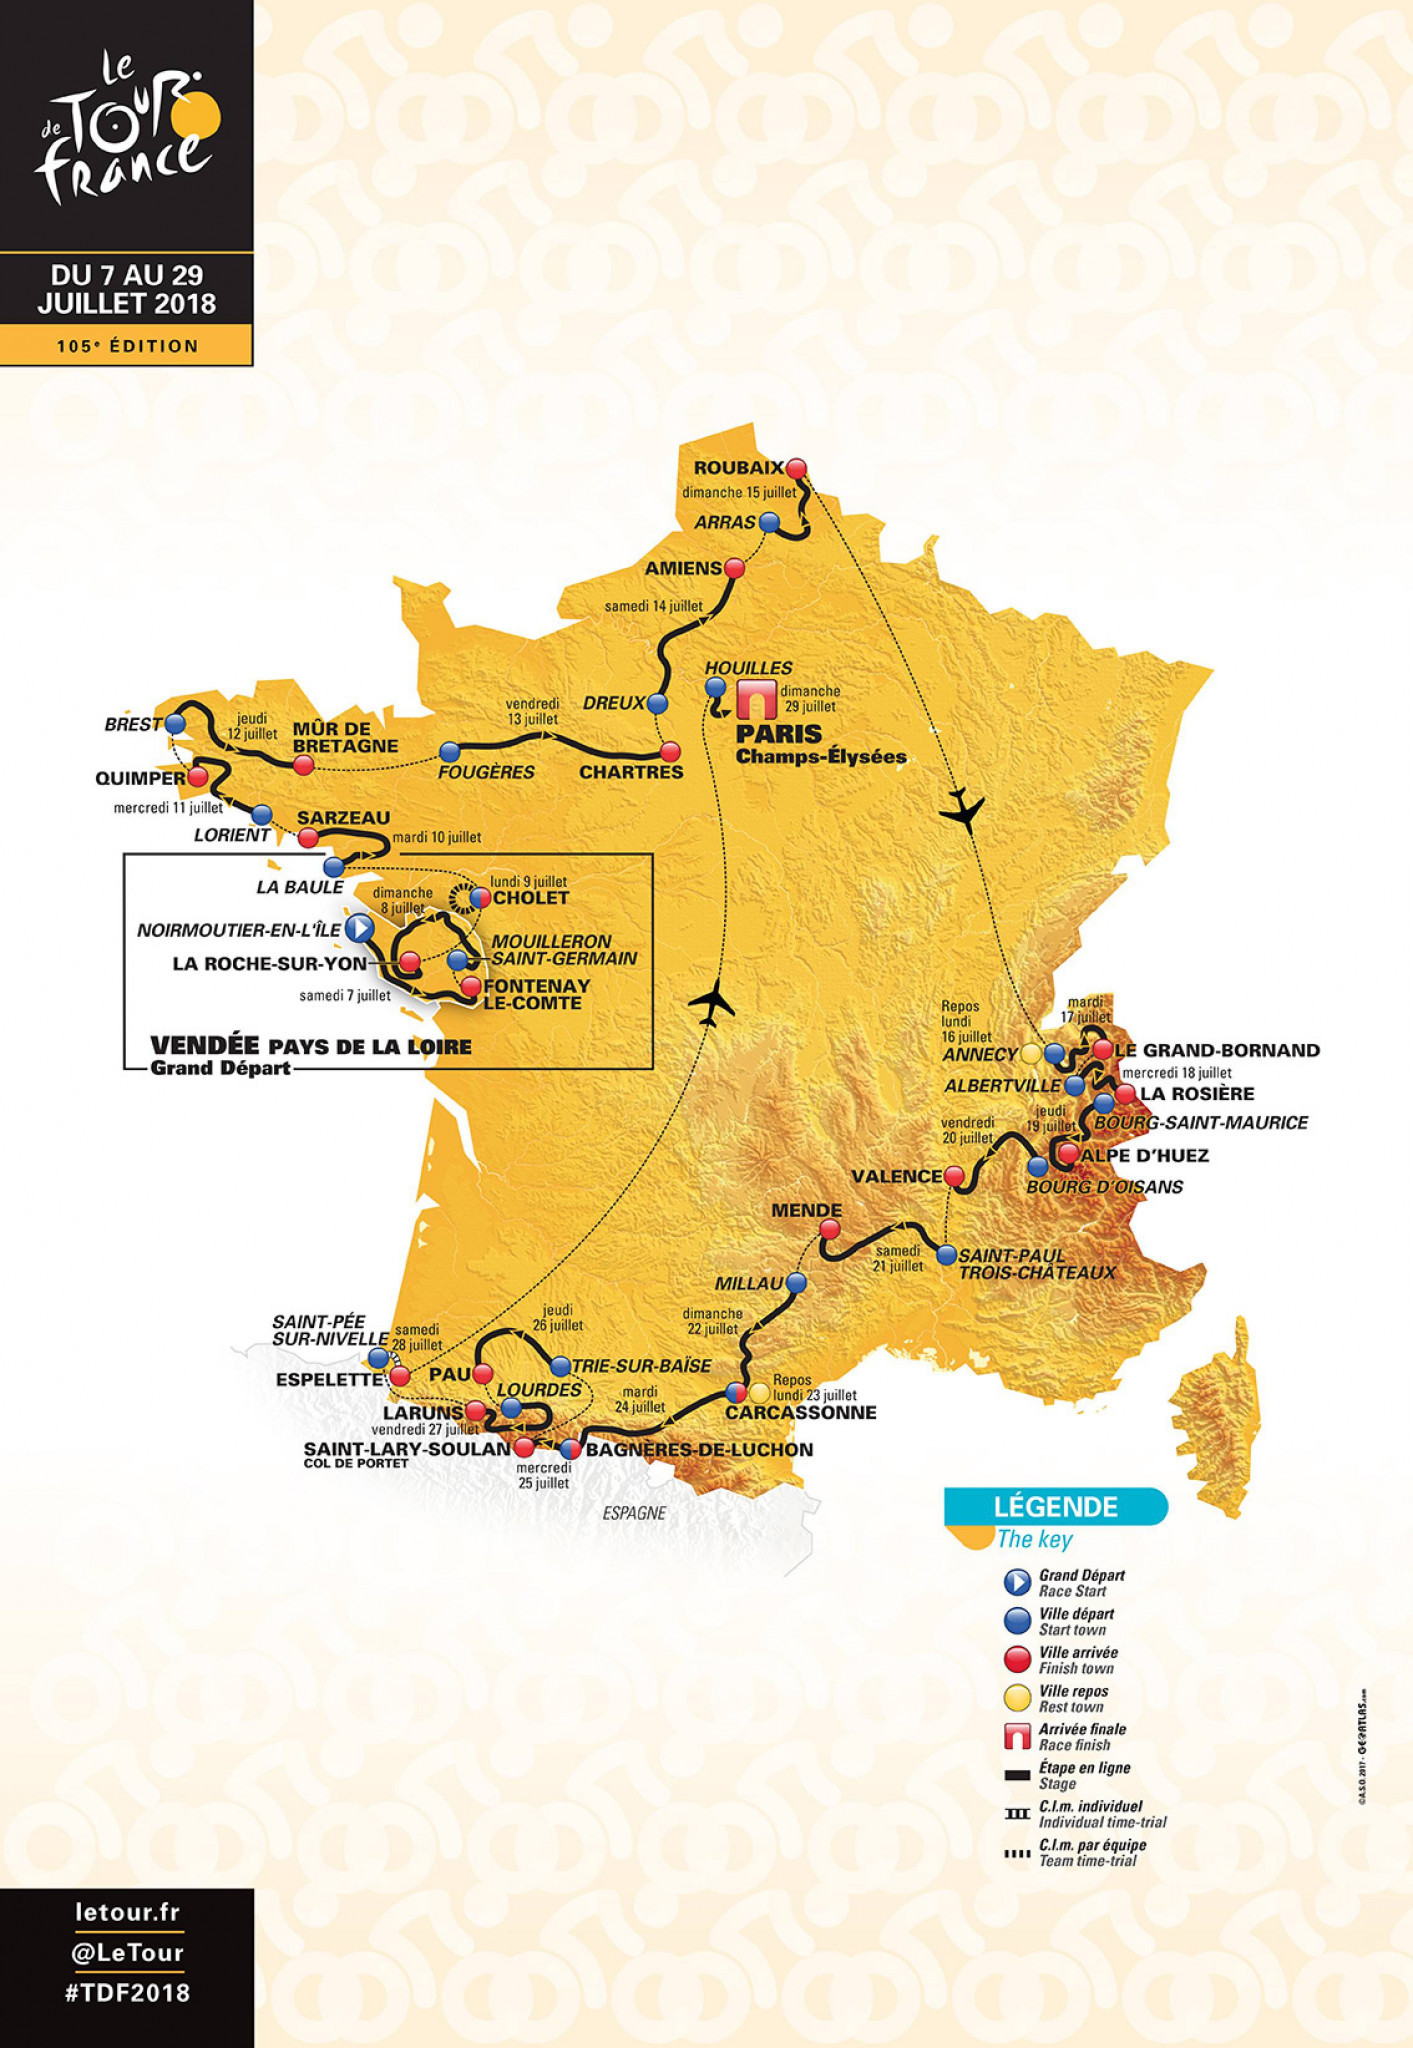 The Tour de France 2018 route has been unveiled by organisers ©TDF